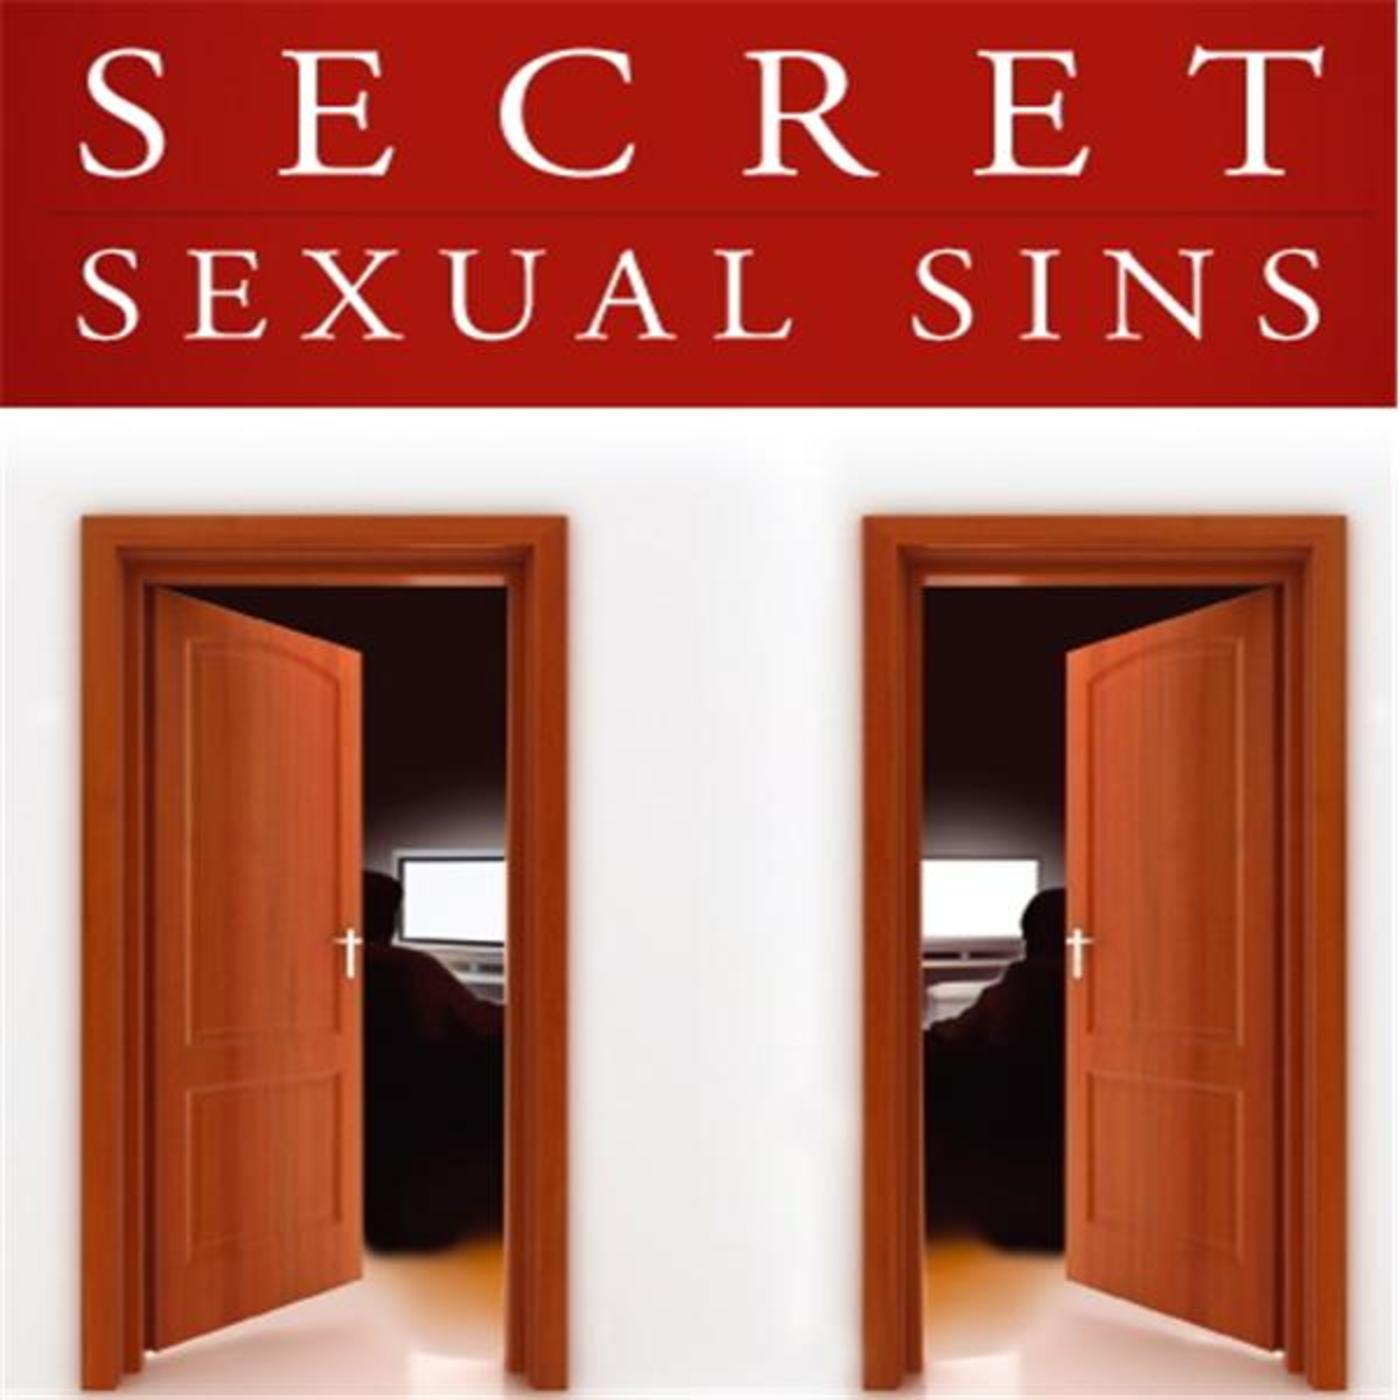 Secret Sexual Sins